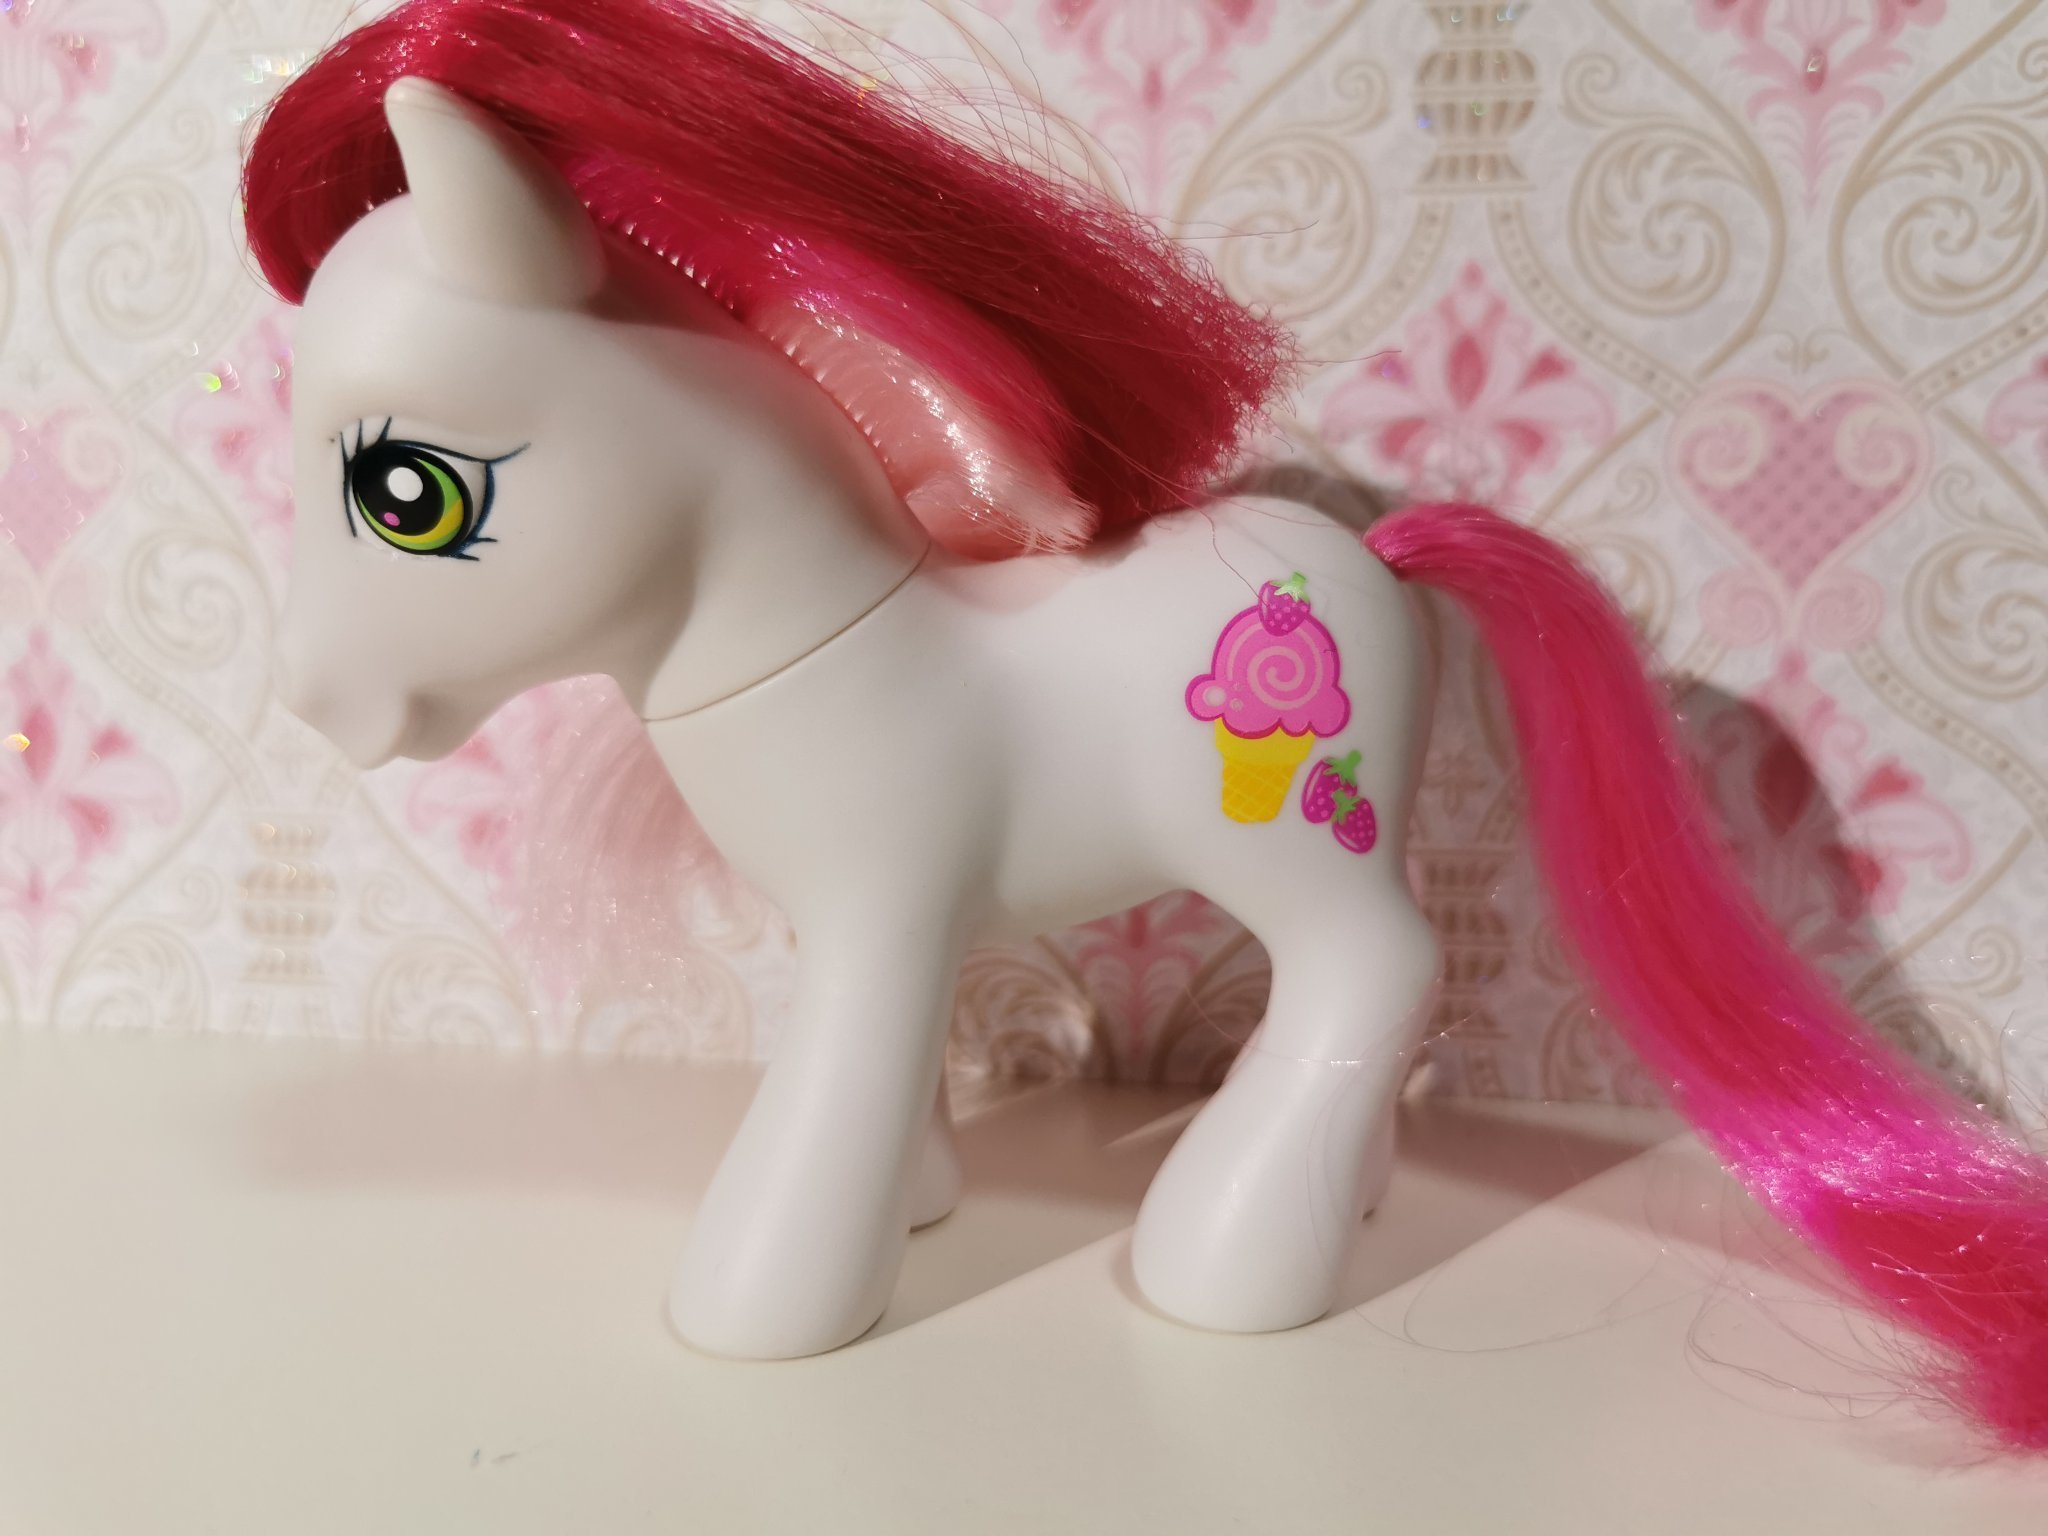 My little pony G3 Strawberry Surprise